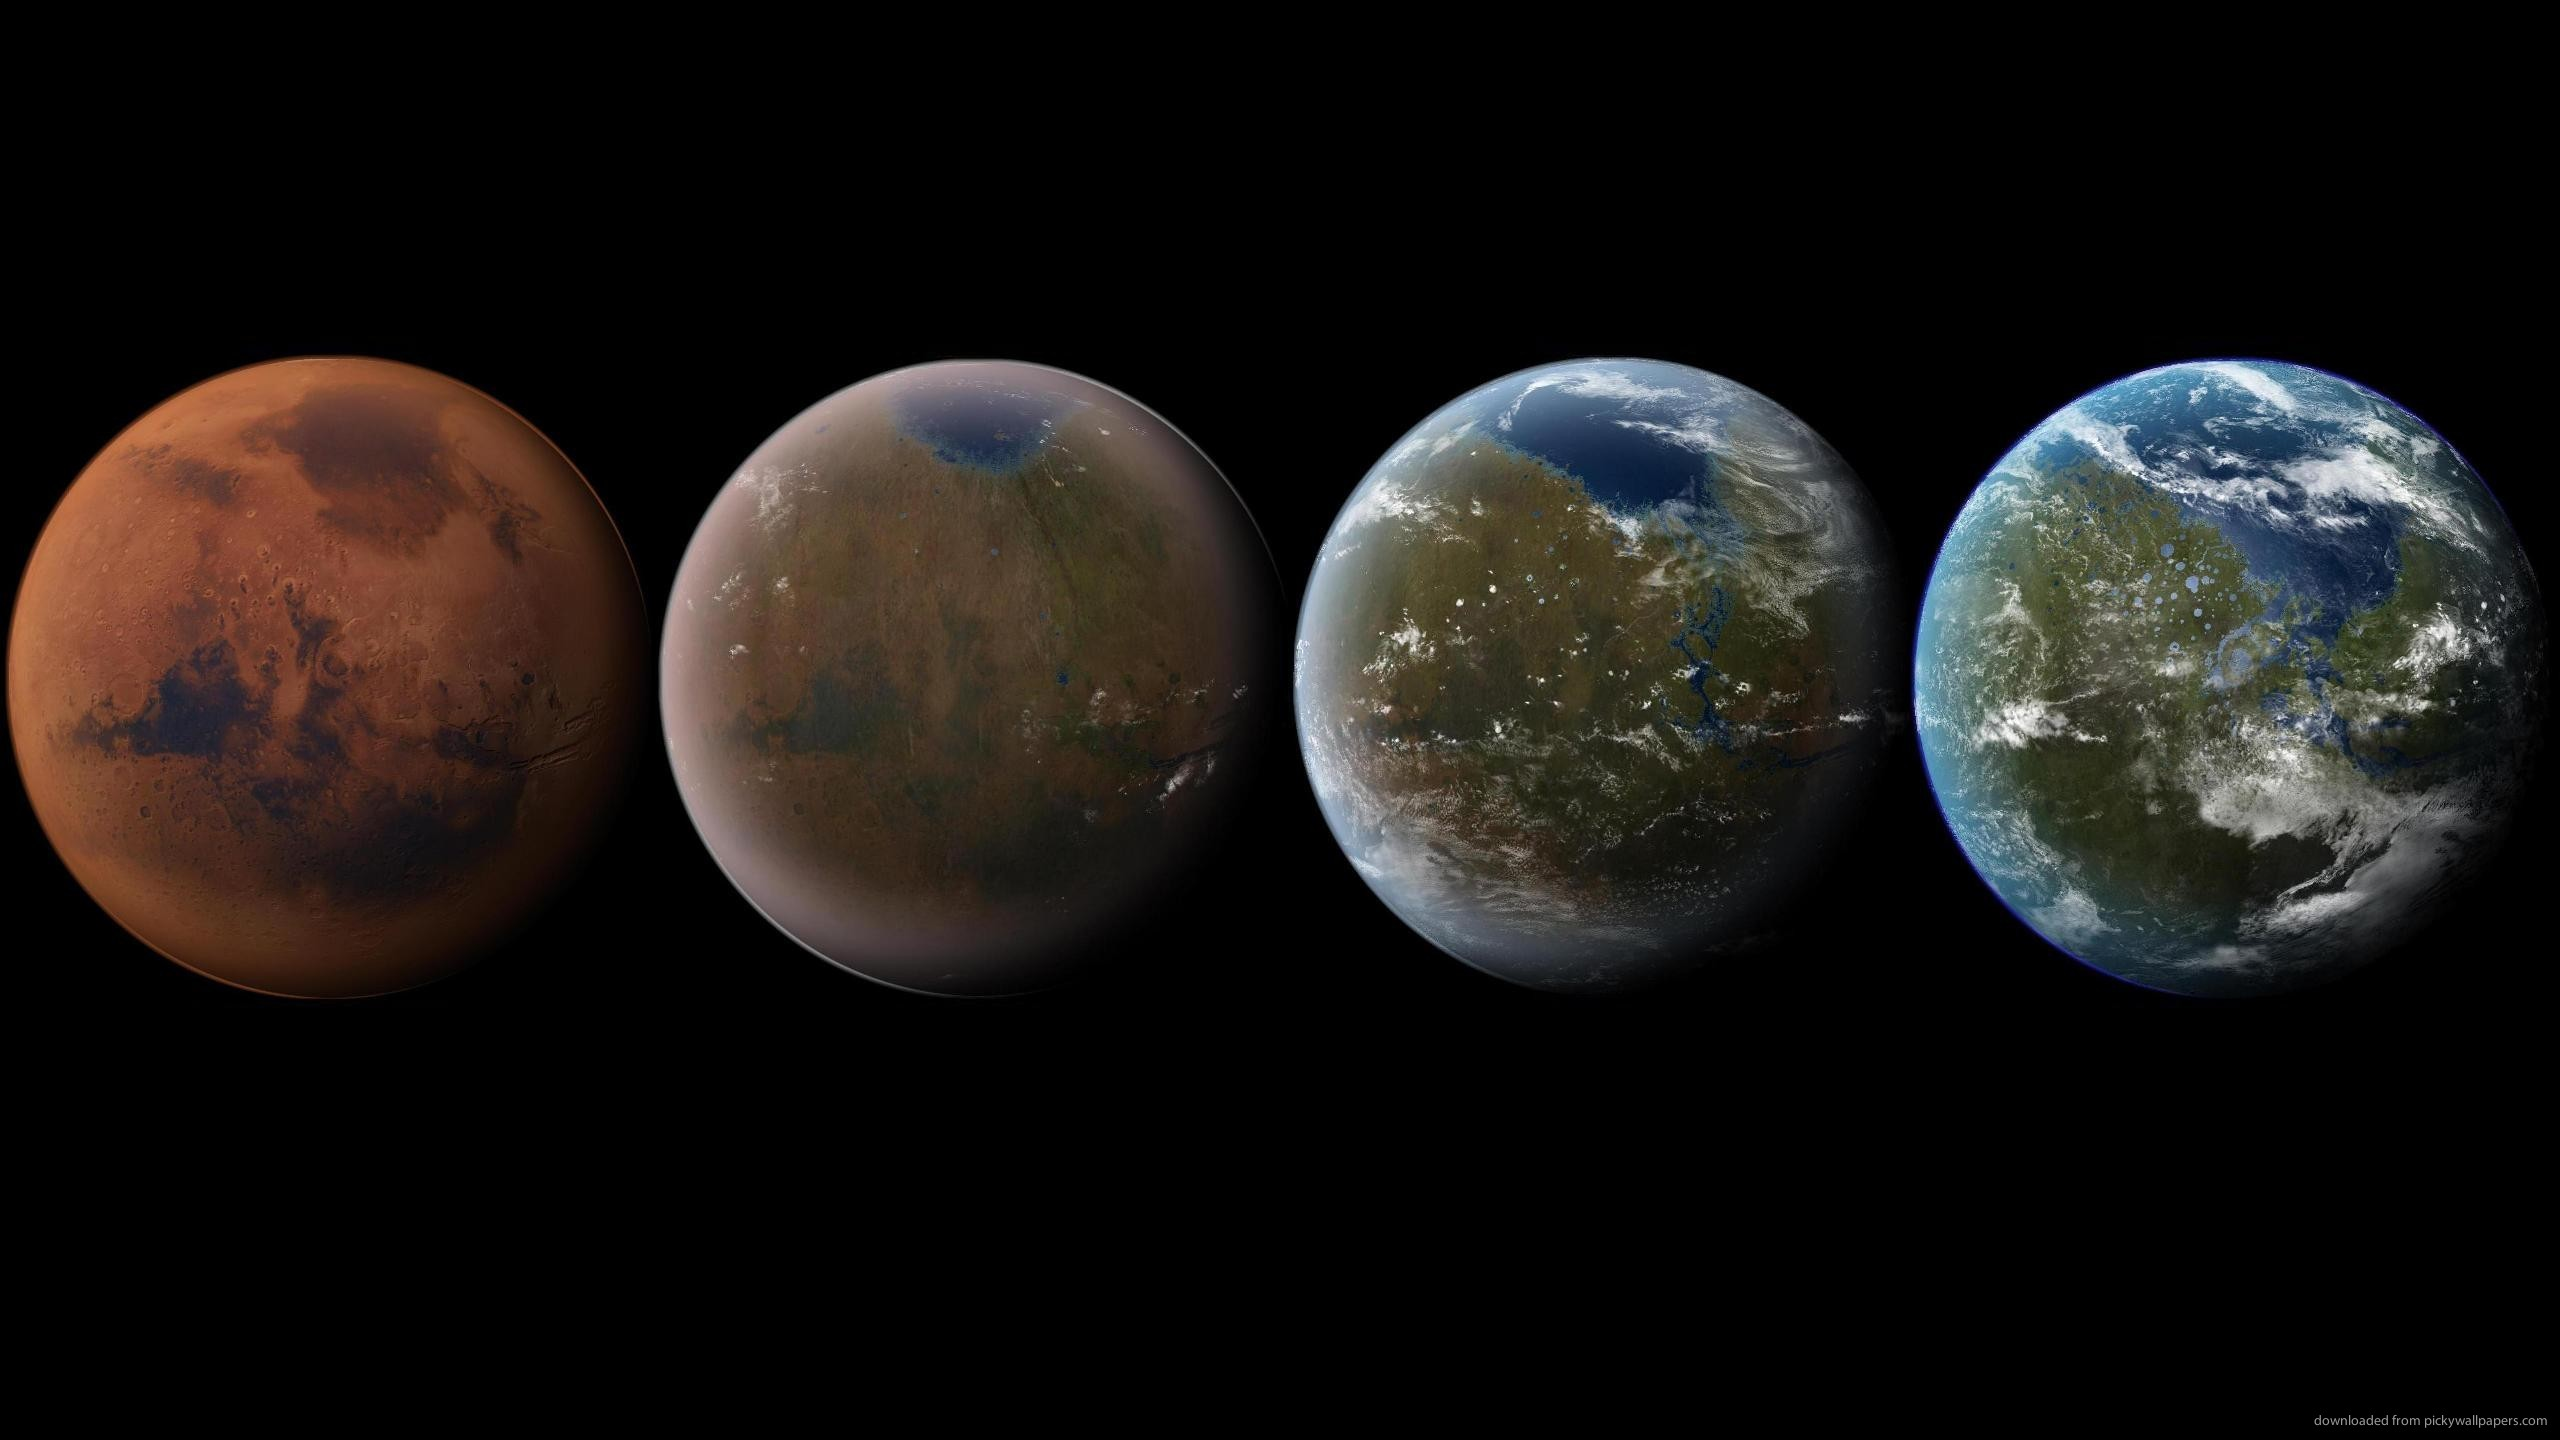 Download 2560x1440 Mars Terraforming Wallpaper